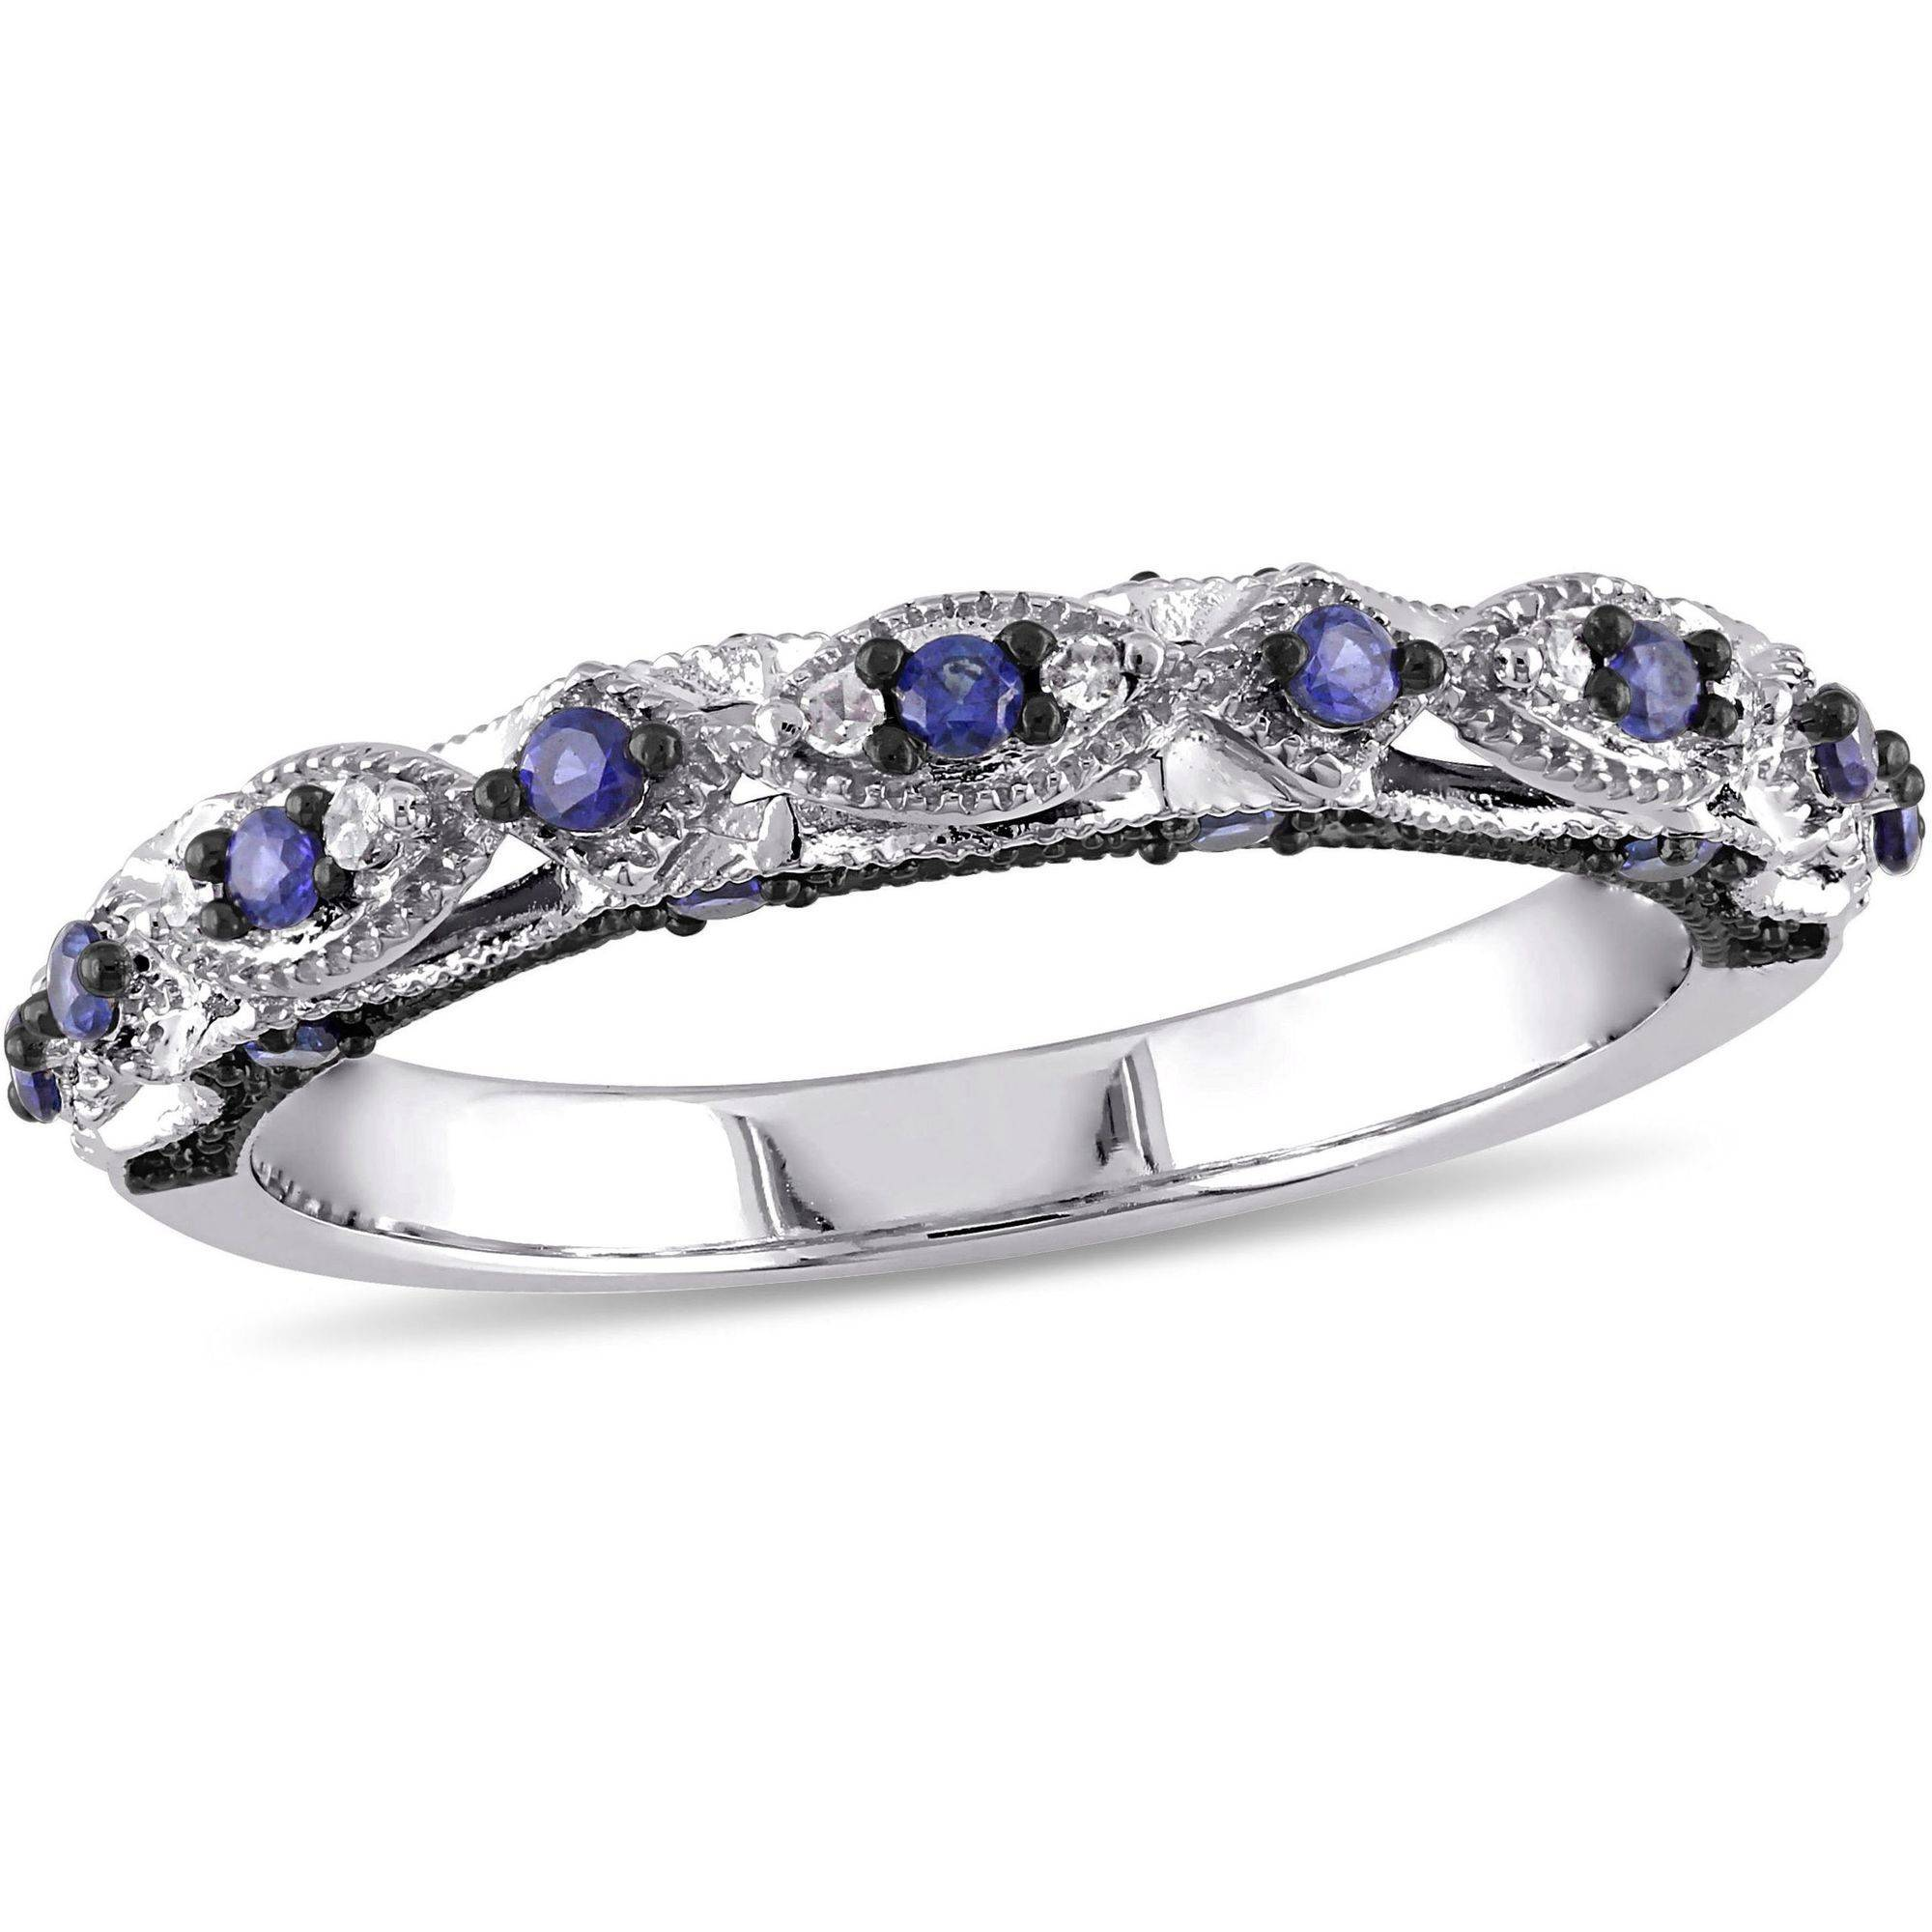 Tangelo 1/3 Carat T.G.W. Created Blue Sapphire and Diamond-Accent 10kt White Gold Vintage Miligrain Design Wedding Band